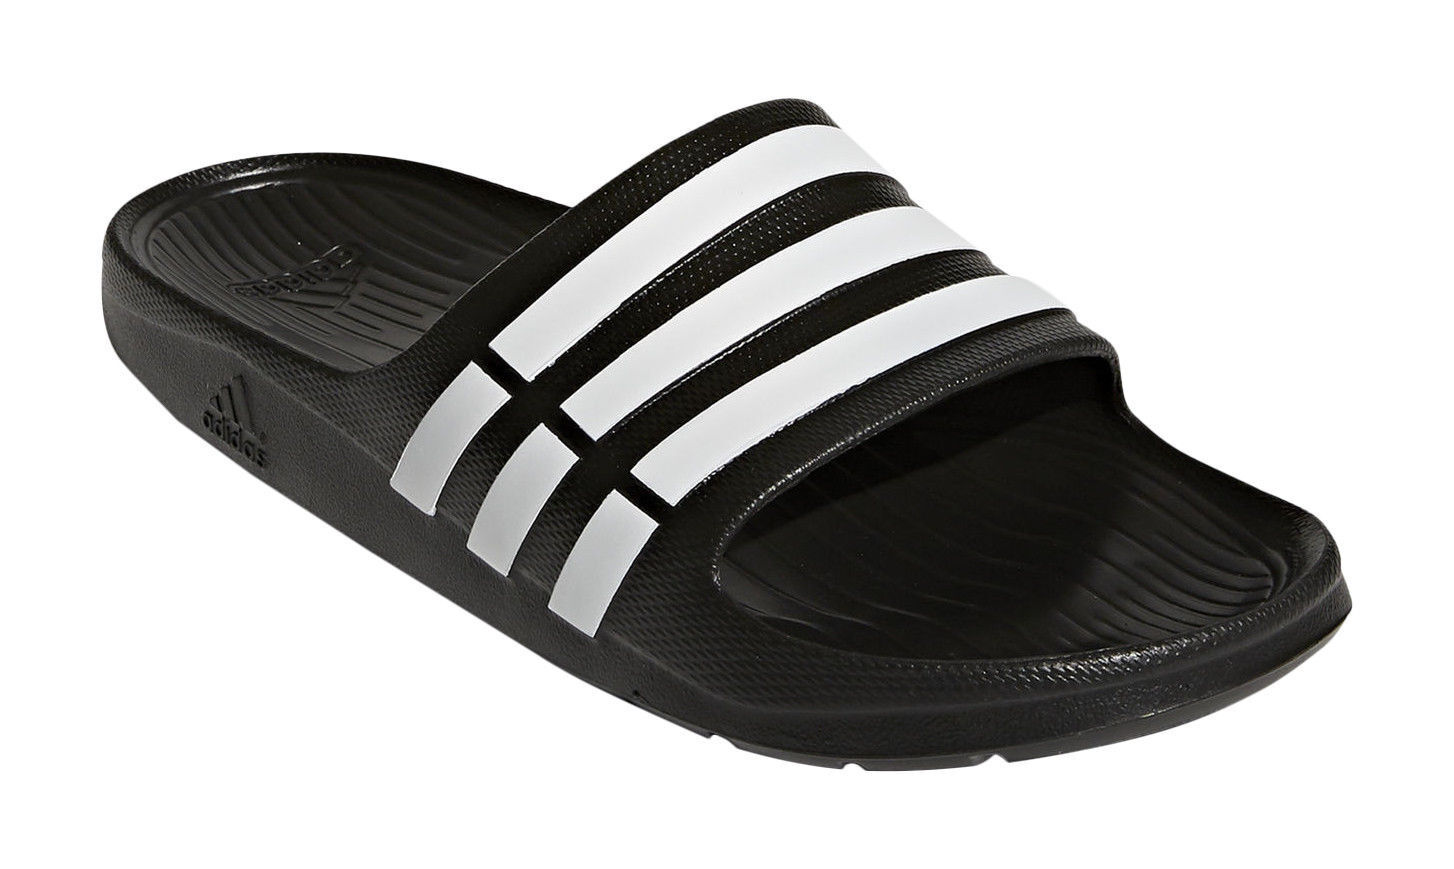 52ddfd563 adidas Duramo Men s Slides - Size 12 - Black   White for sale online ...